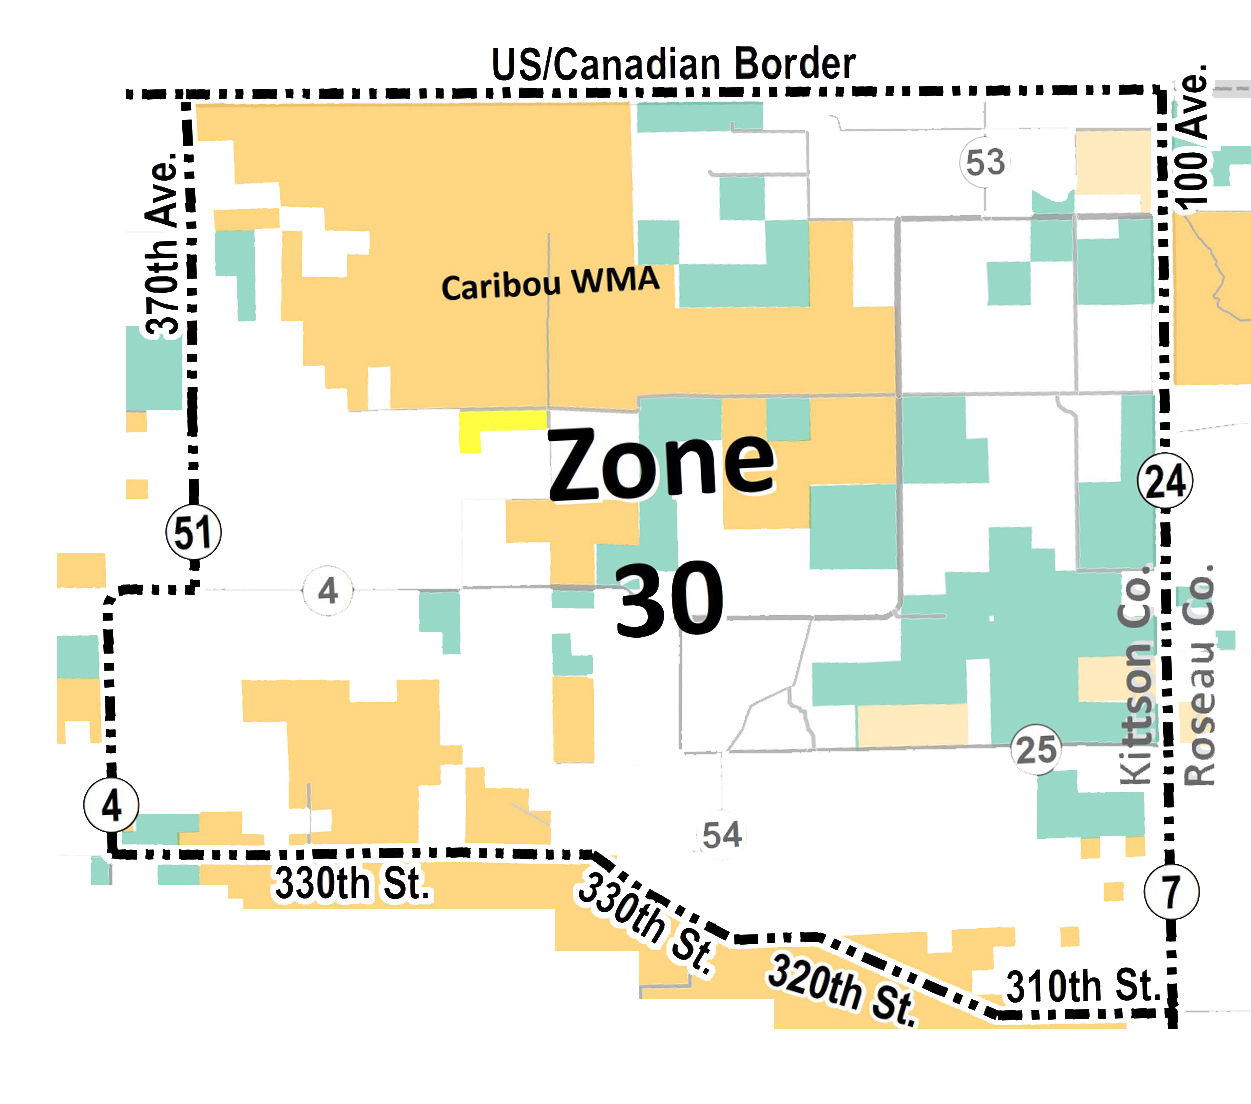 Map showing elk Zone 30